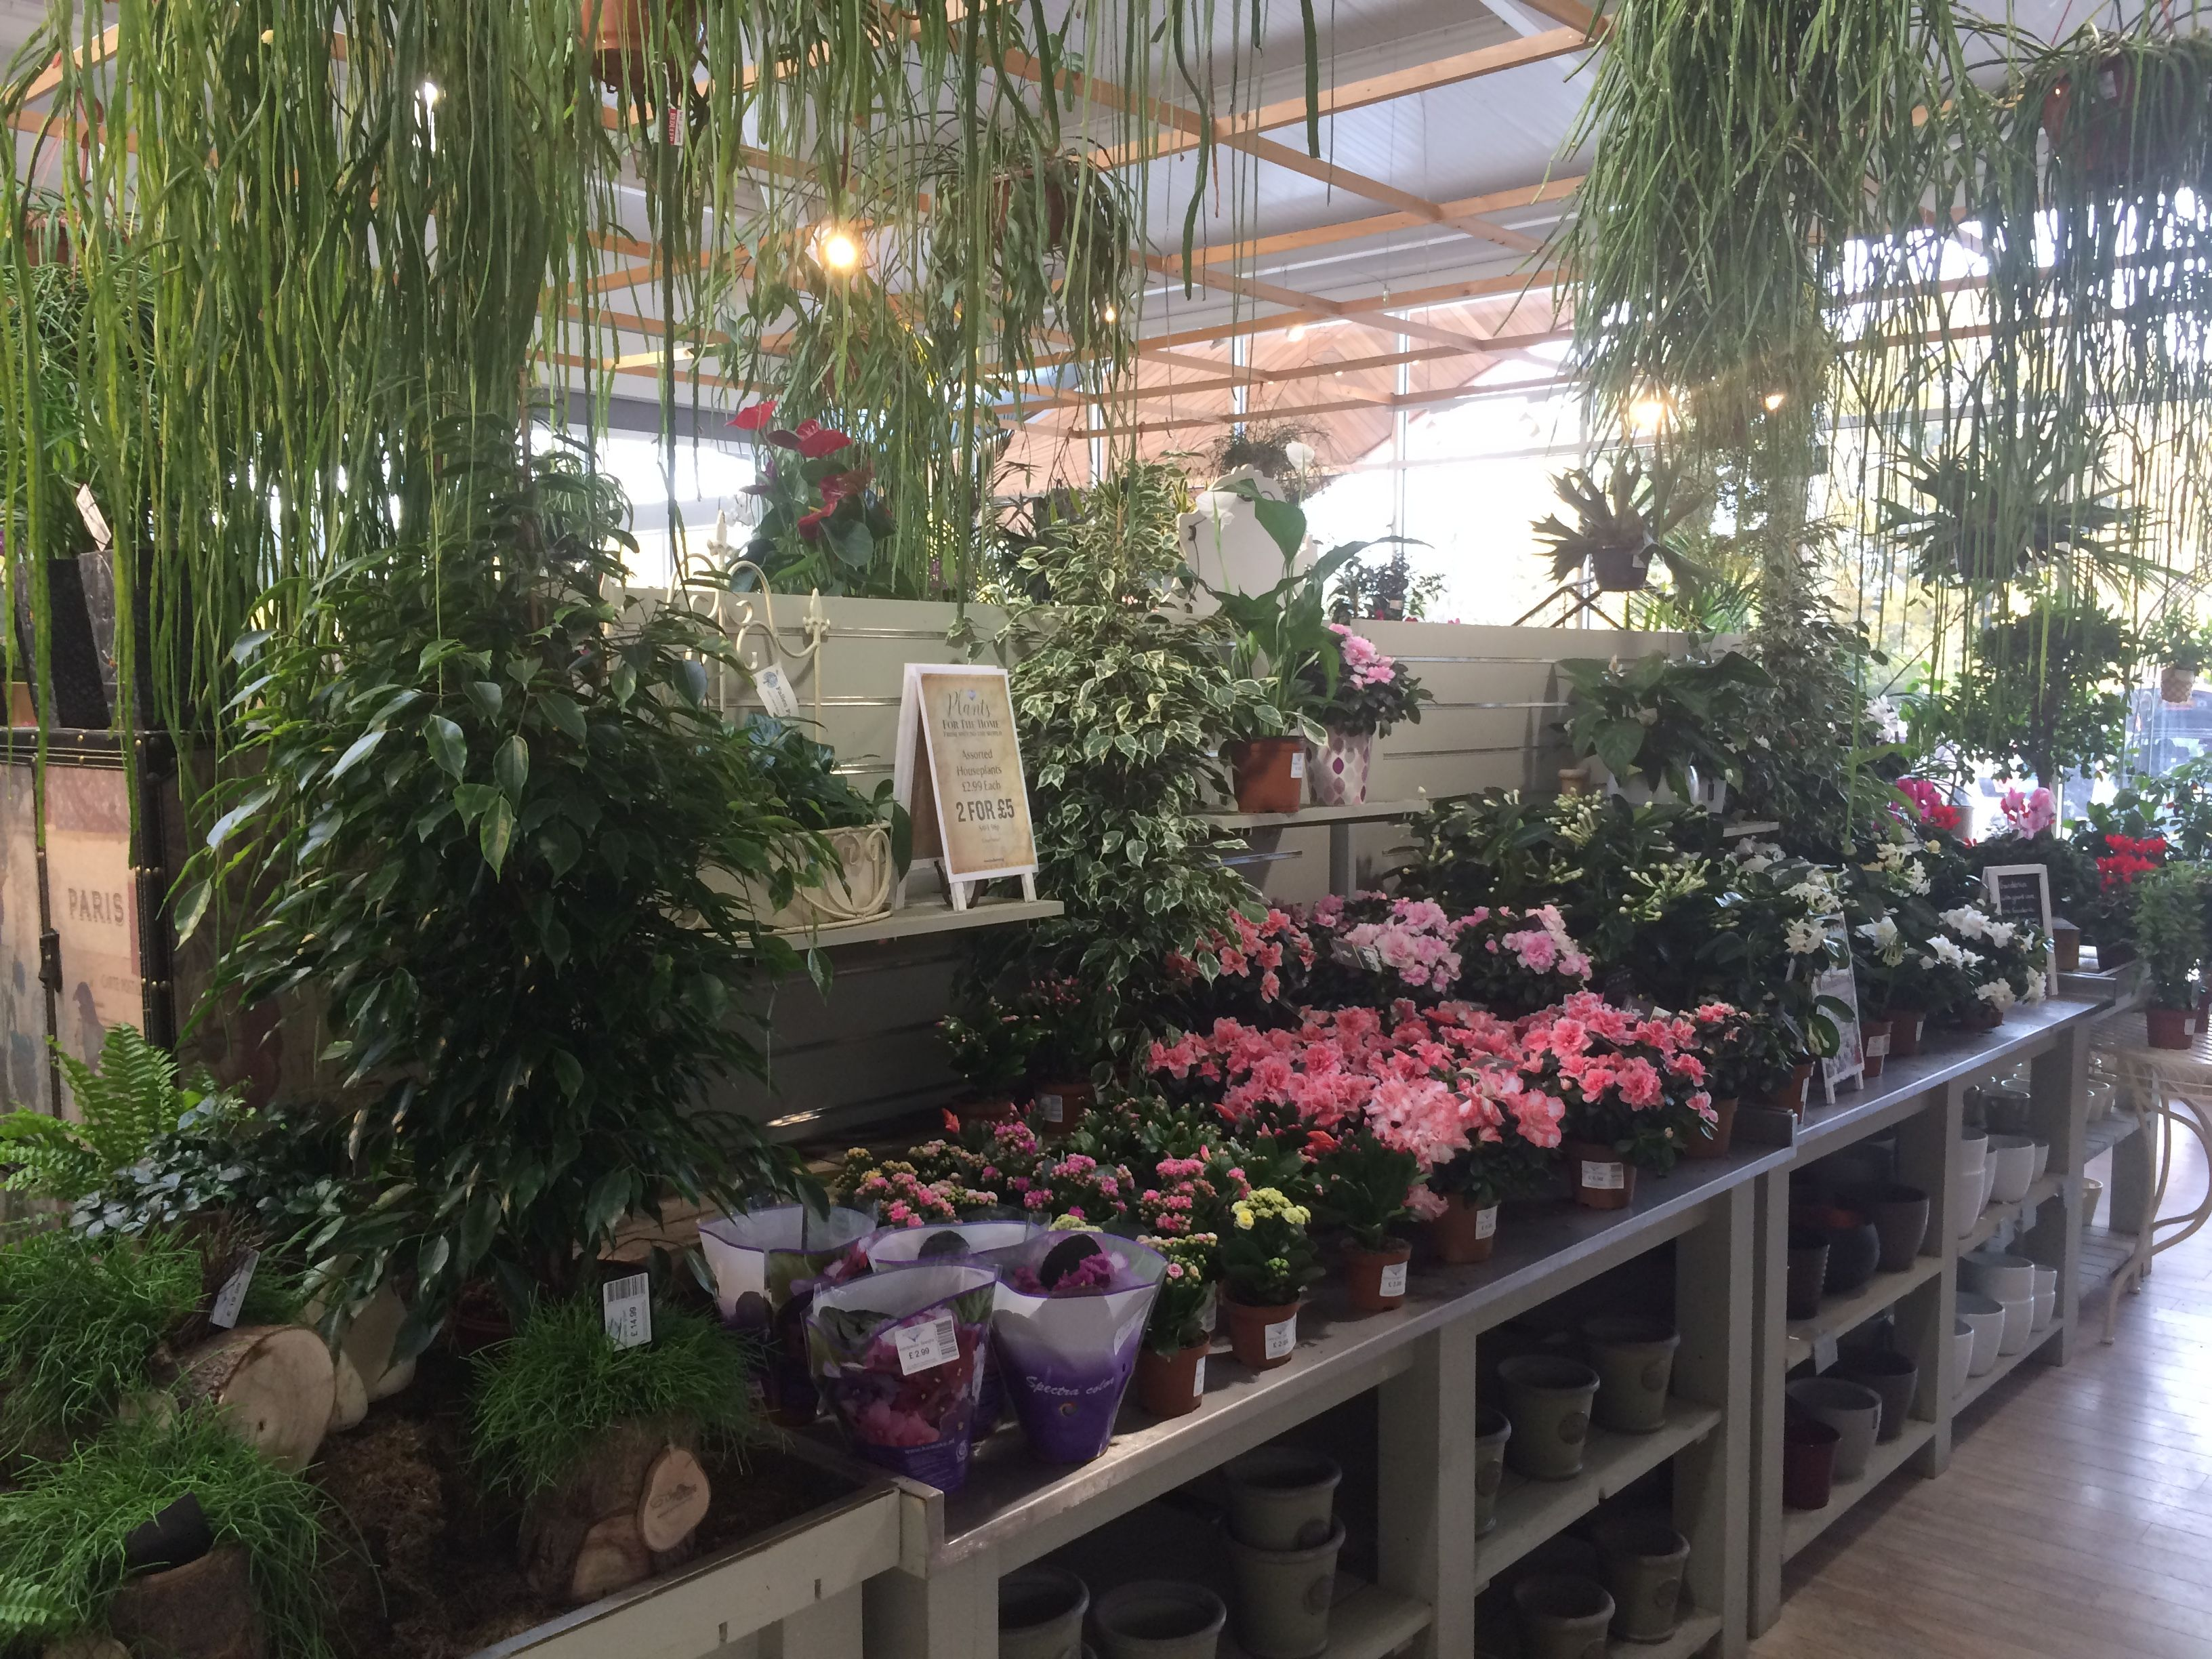 House Plant Display At Redfields Garden Centre Part Of The Blue Diamond Group November 2016 Garden Center Garden Center Displays Garden